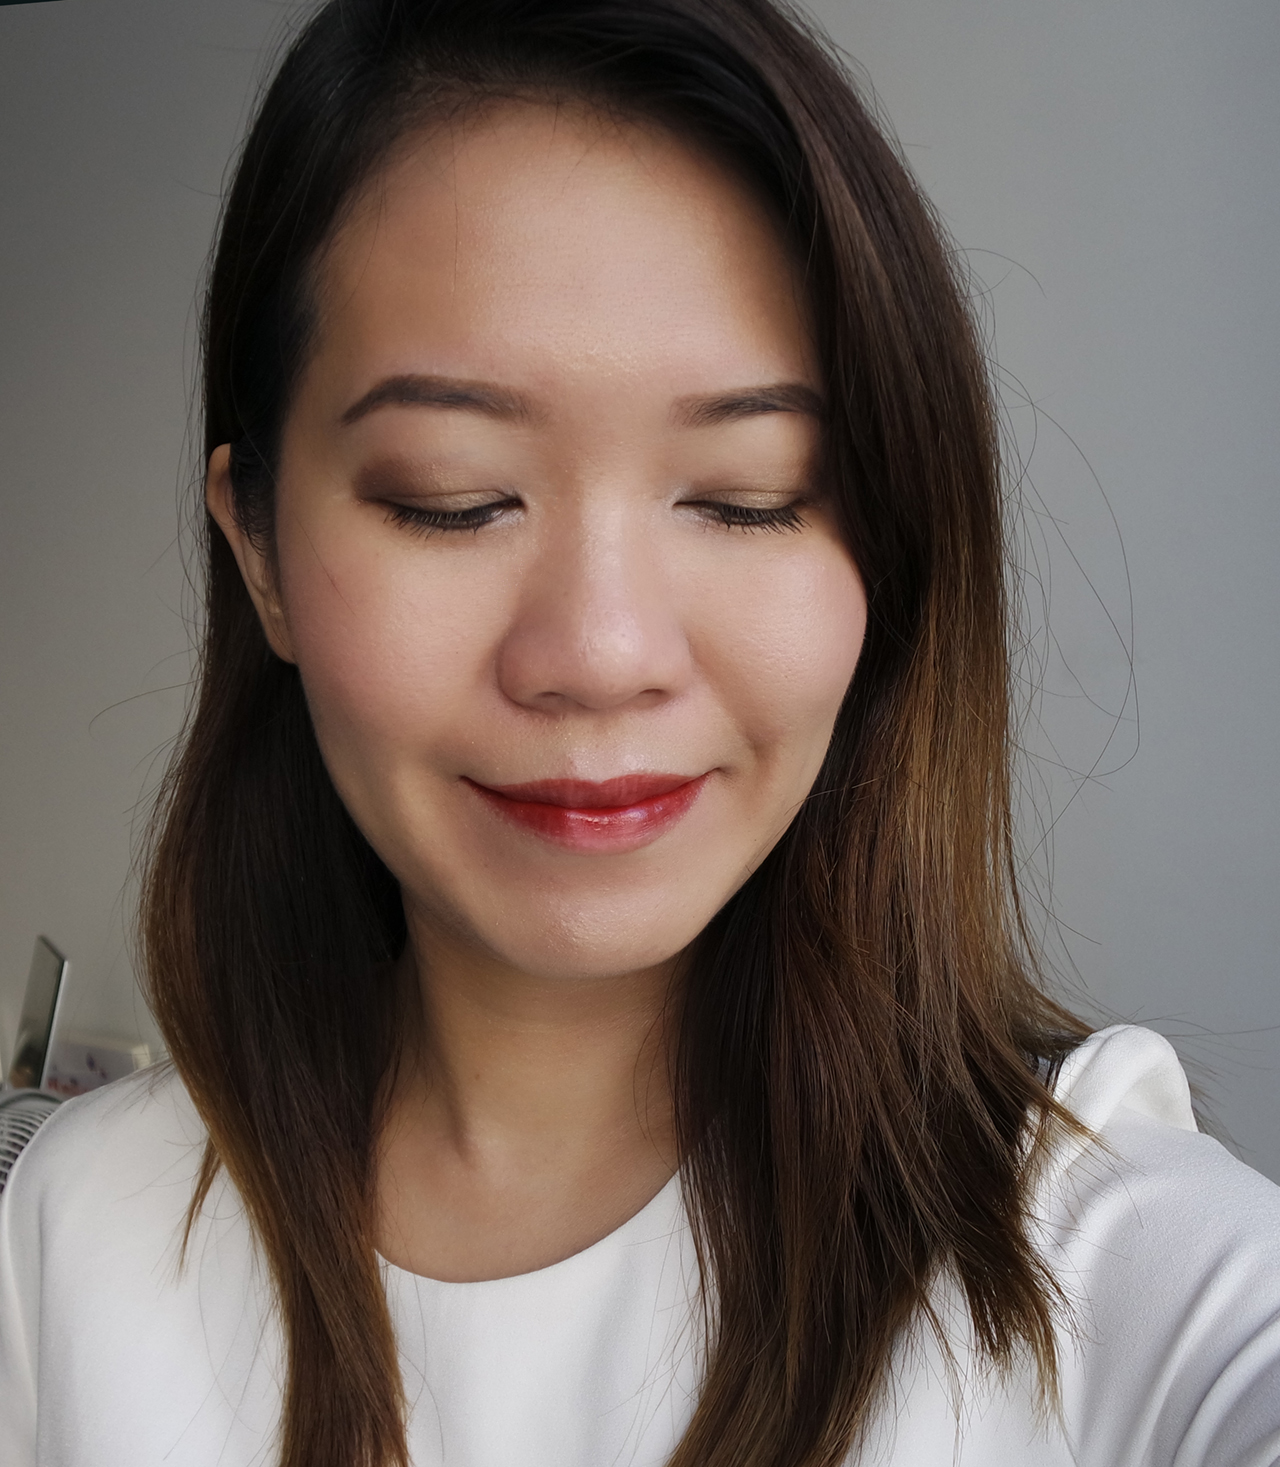 Zoeva The Basic Moment makeup look